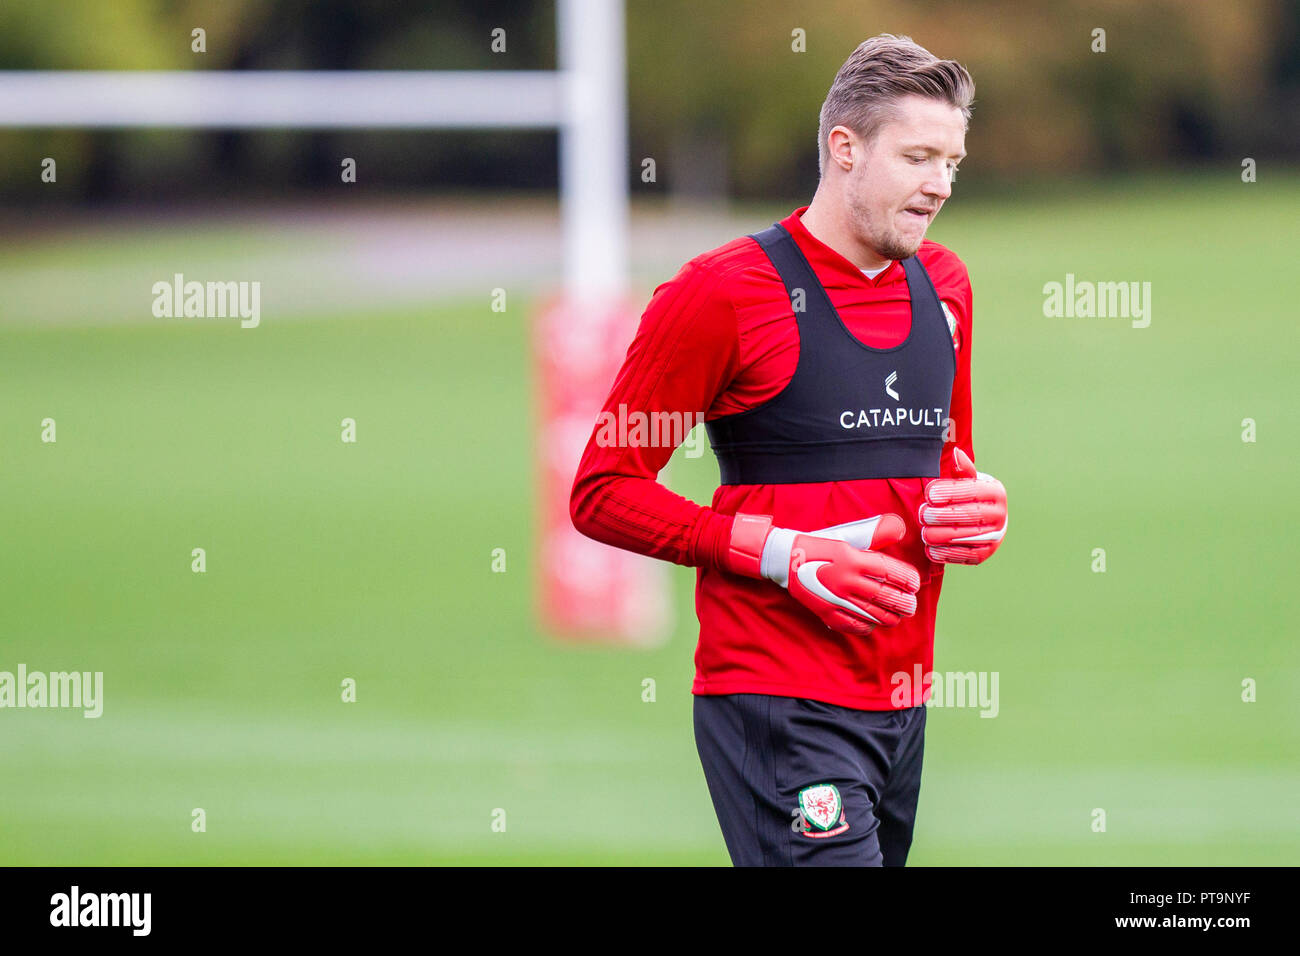 Hensol, Wales, UK. 8th October 2018. Wayne Hennessey during Wales national team training ahead of the International Challenge match against Spain and the UEFA Nations League match agains Ireland. Credit: Mark Hawkins/Alamy Live News Stock Photo